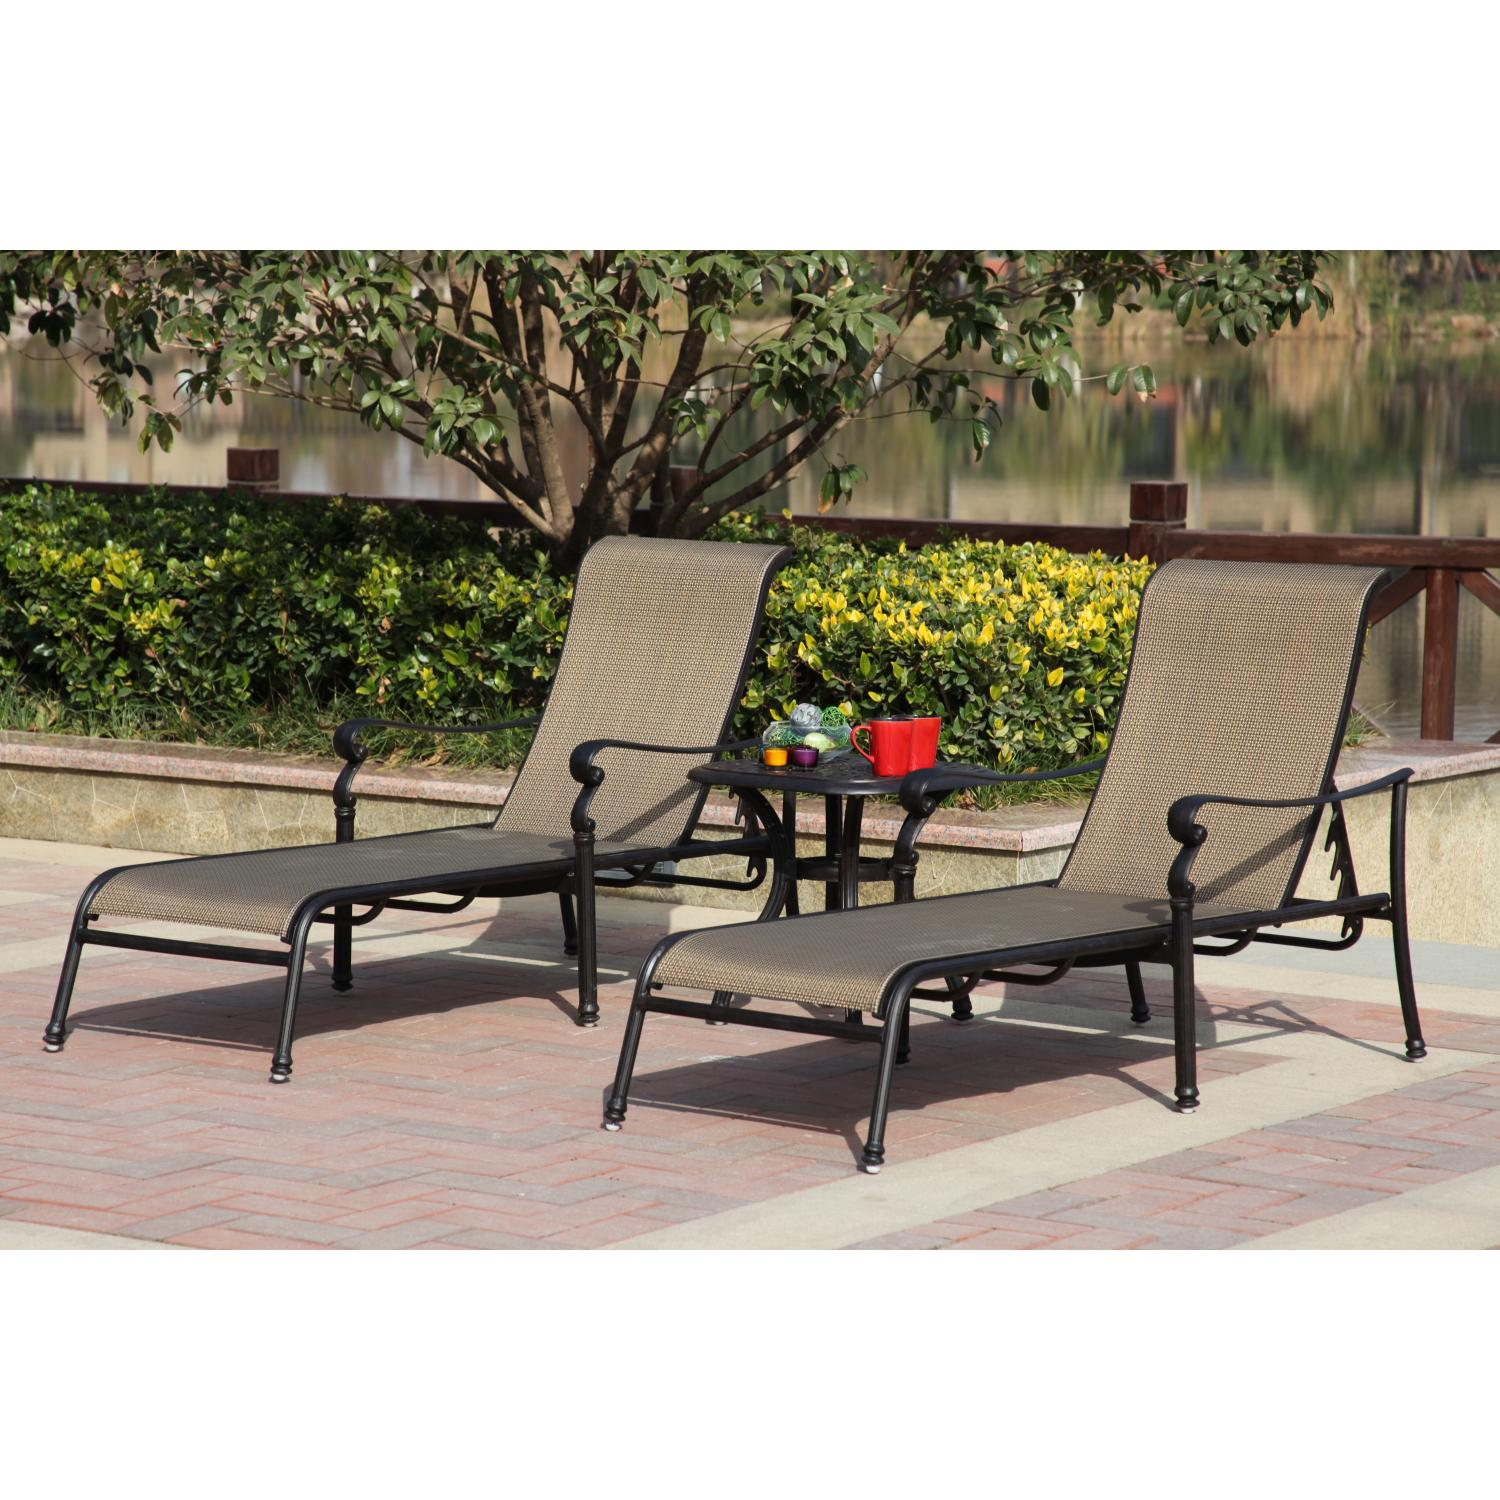 Darlee Monterey 3 Piece Sling Patio Chaise Lounge Set